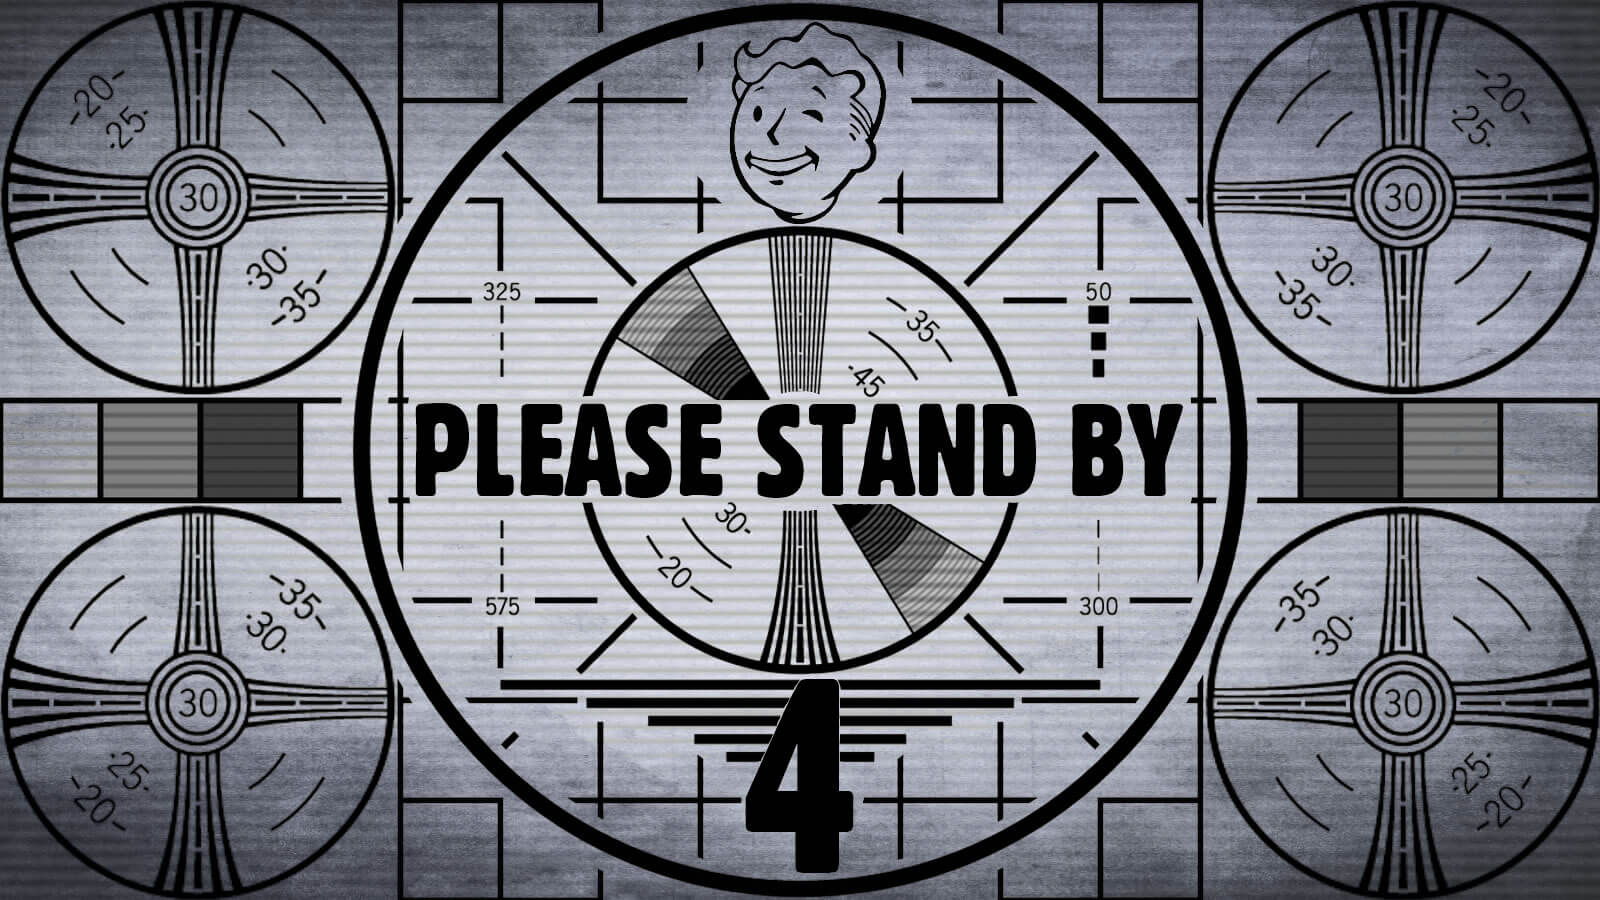 Bethesda trolled over 2 million Fallout fans with a 24-hour stream